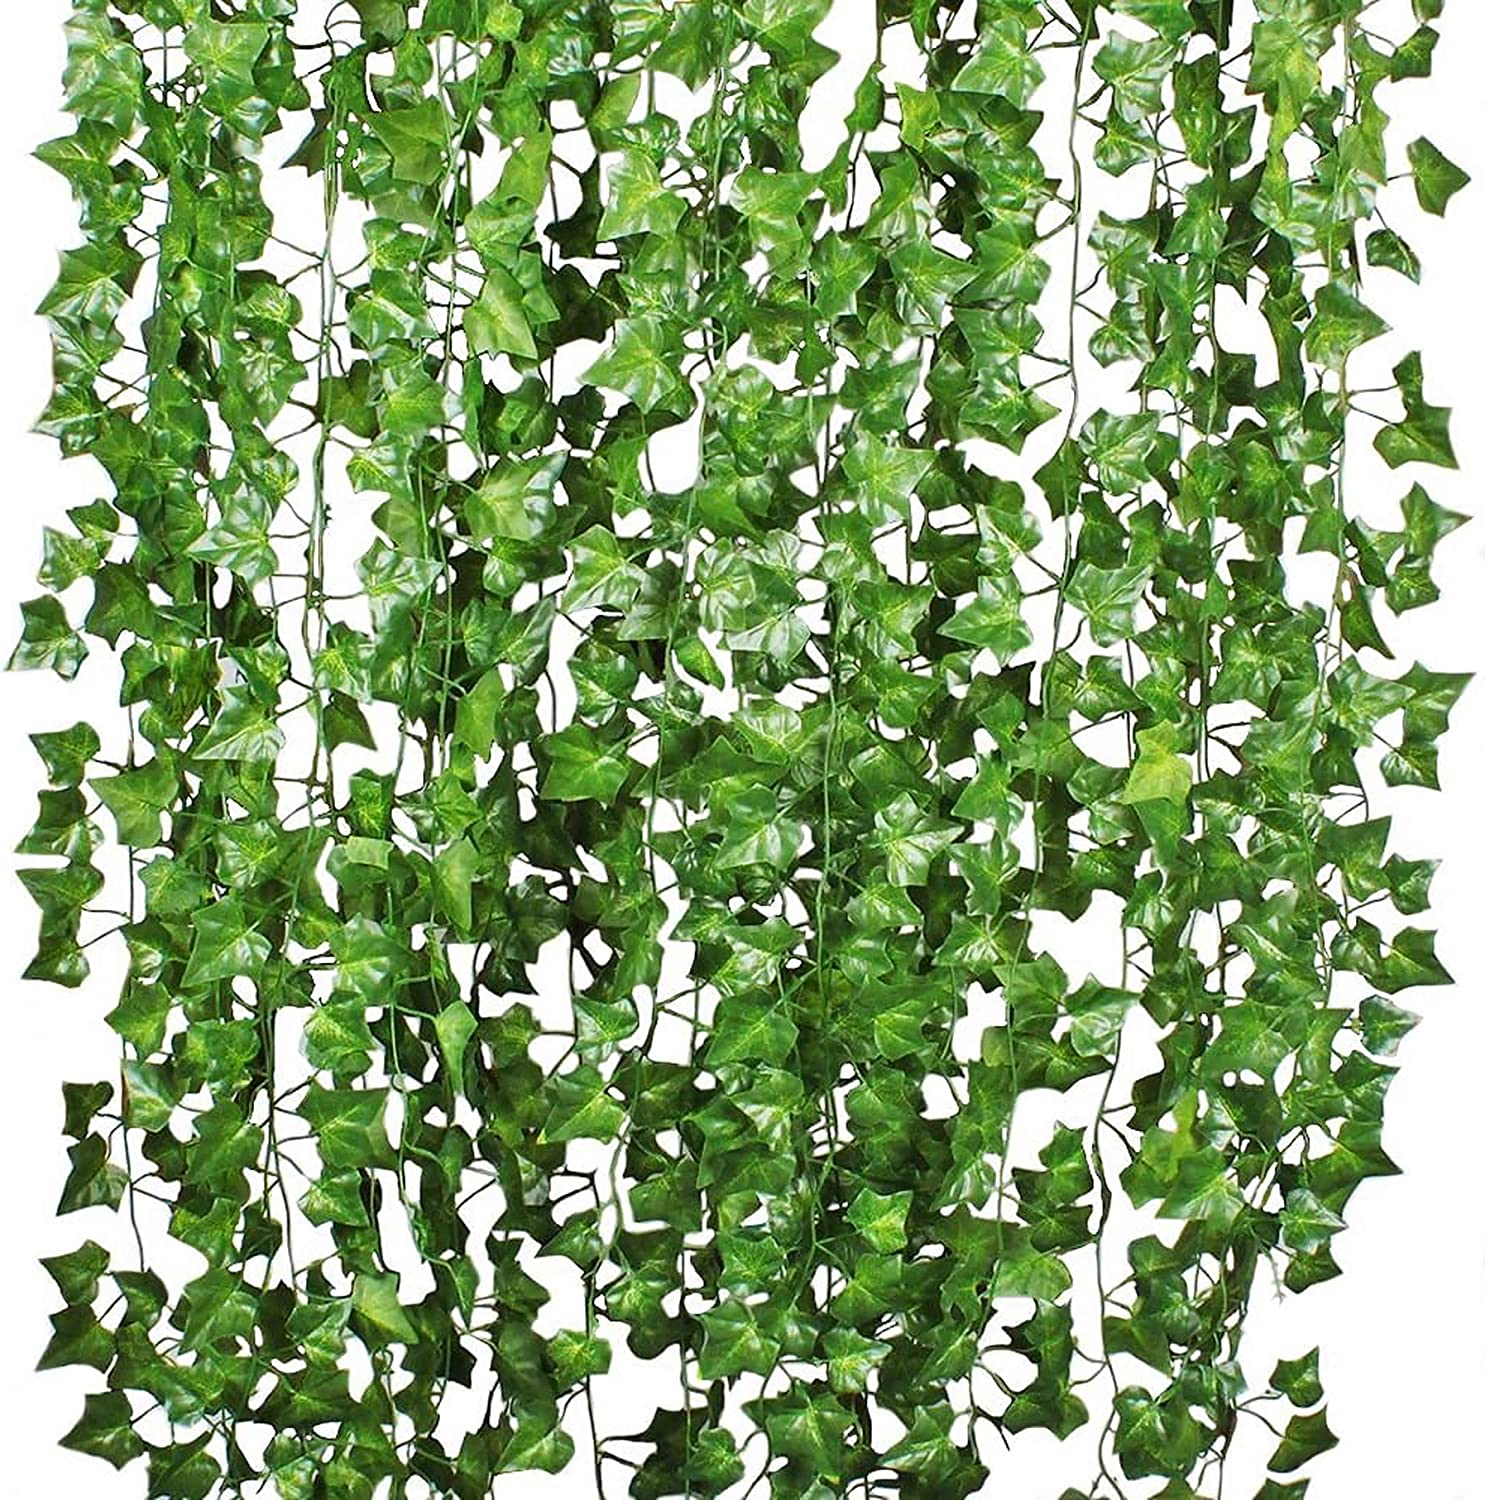 Nice-live Fake Plants Room Decor, 12 Strands of Artificial Ivy Vines Hanging Green Leaf, Greenery Garland Backdrop for Wall Home Kitchen Office Wedding Decorations (Green, Boston Ivy)